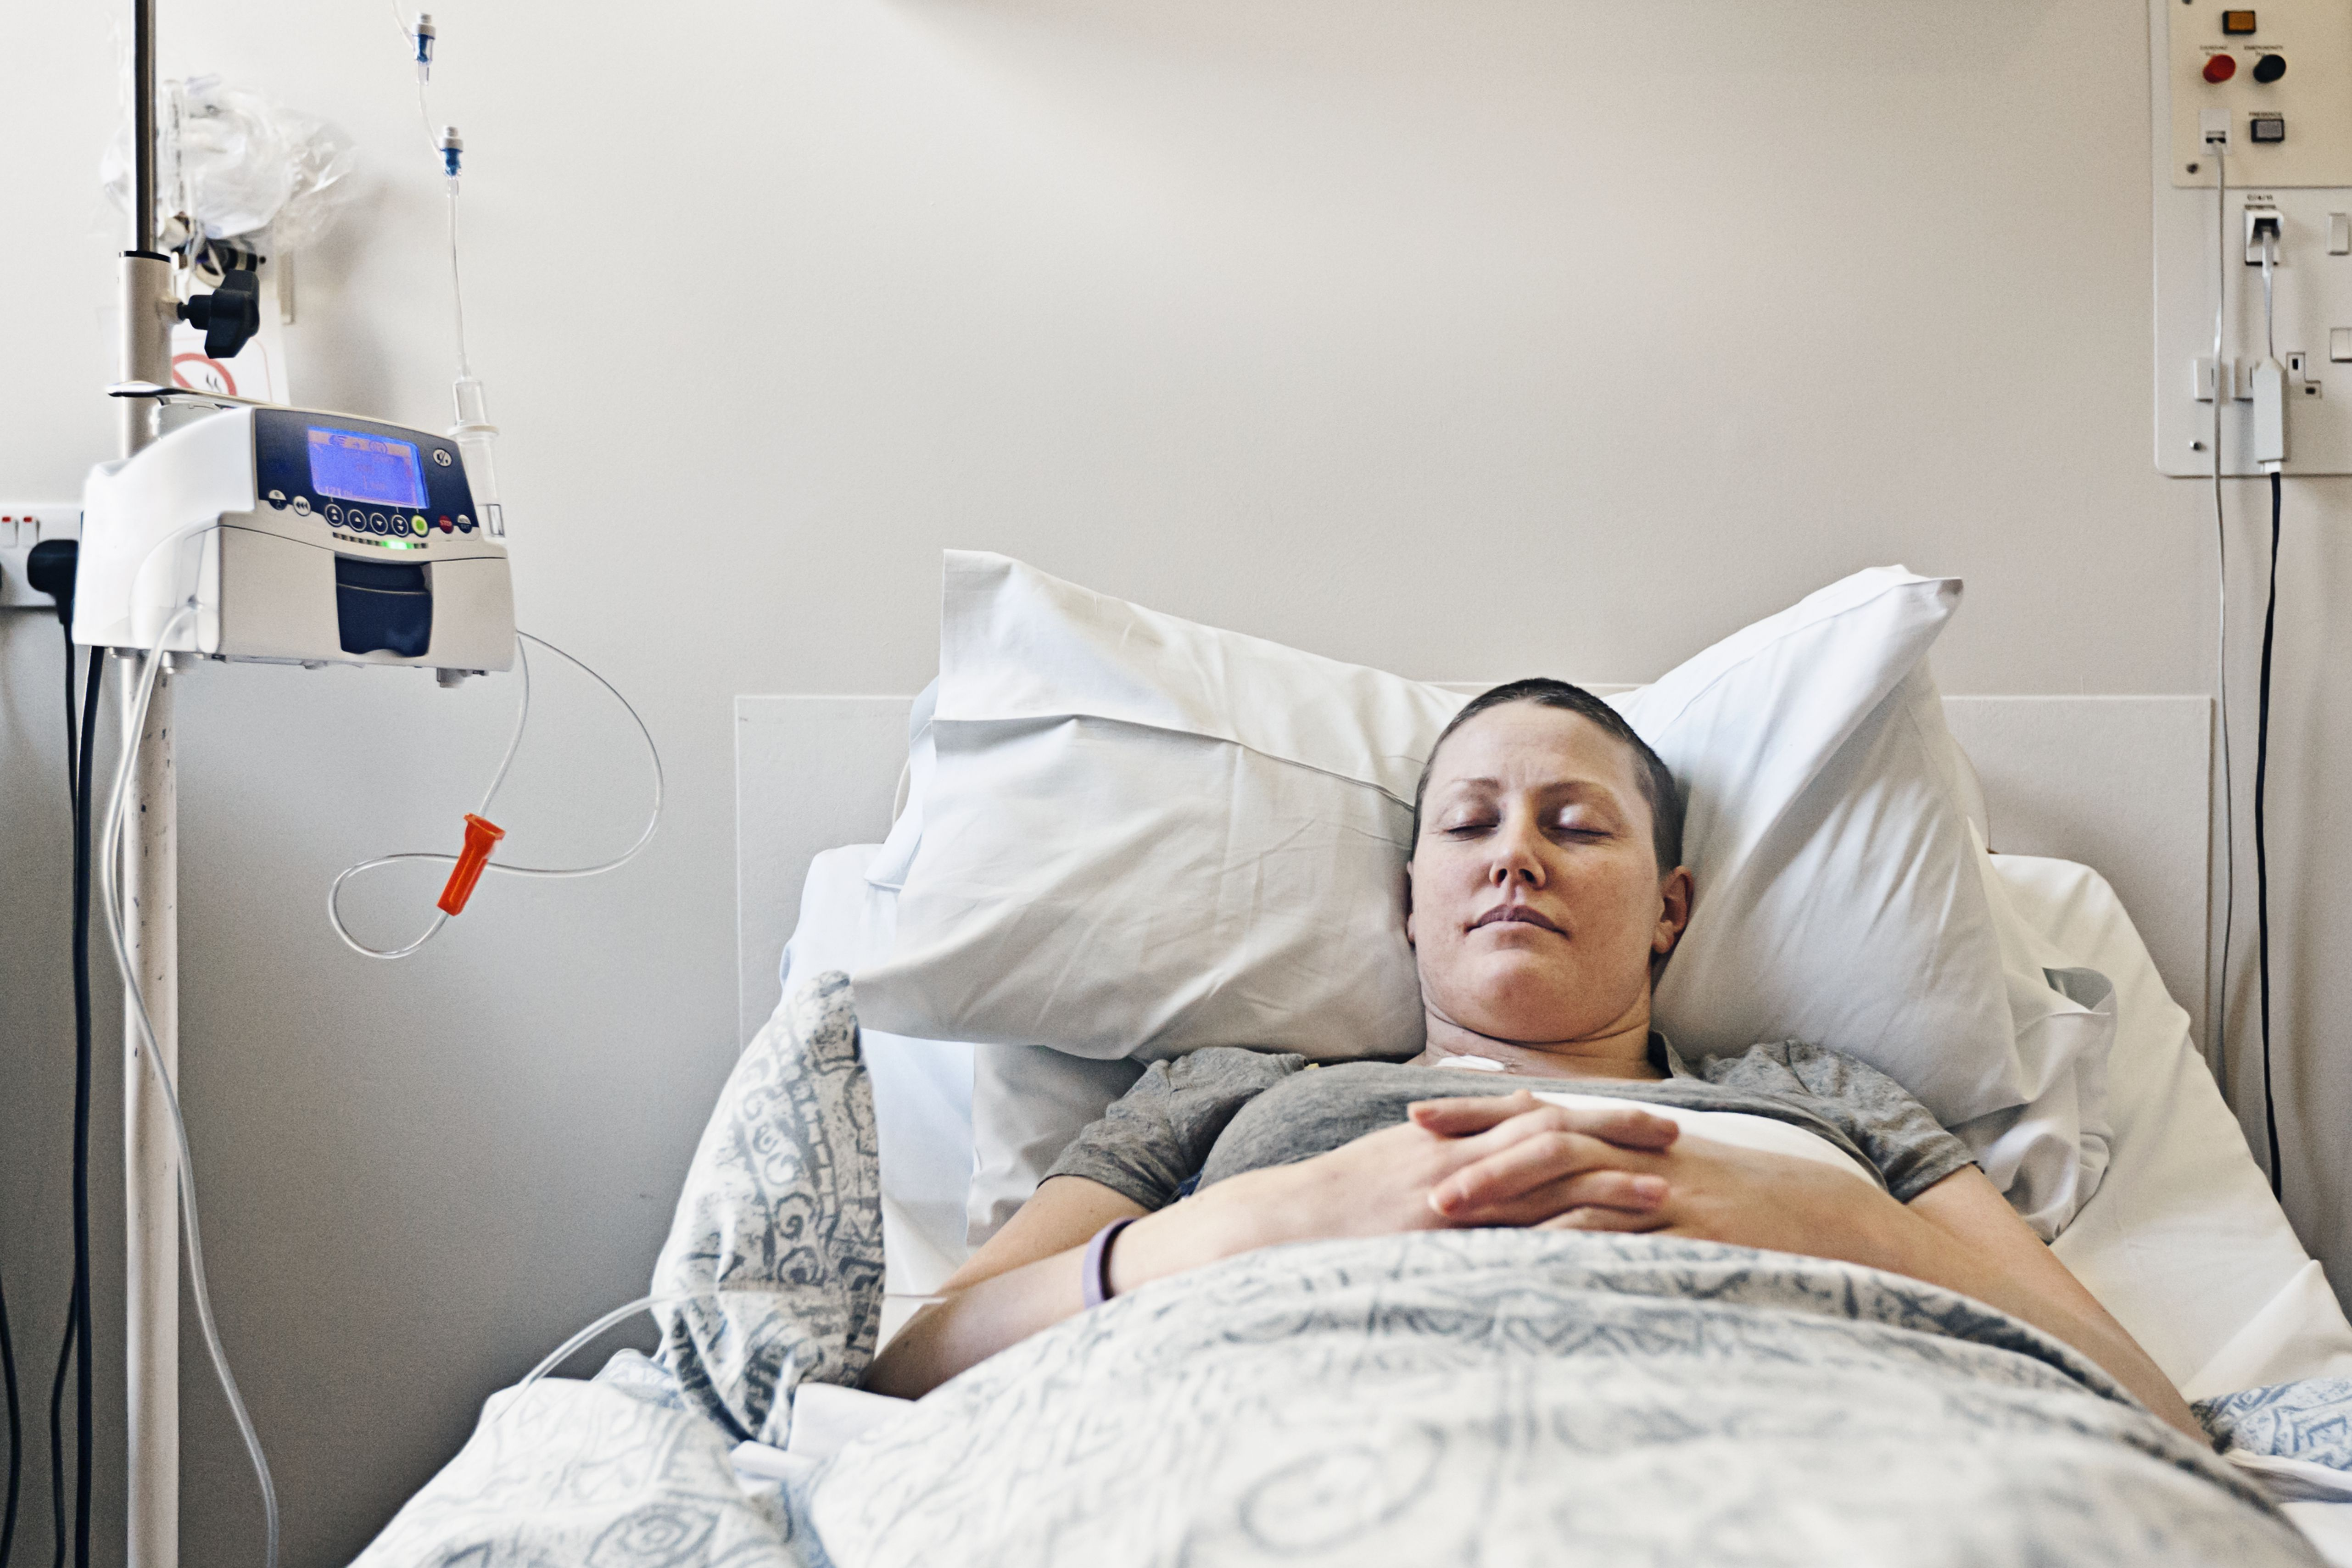 A breast cancer patient in her hospital bed